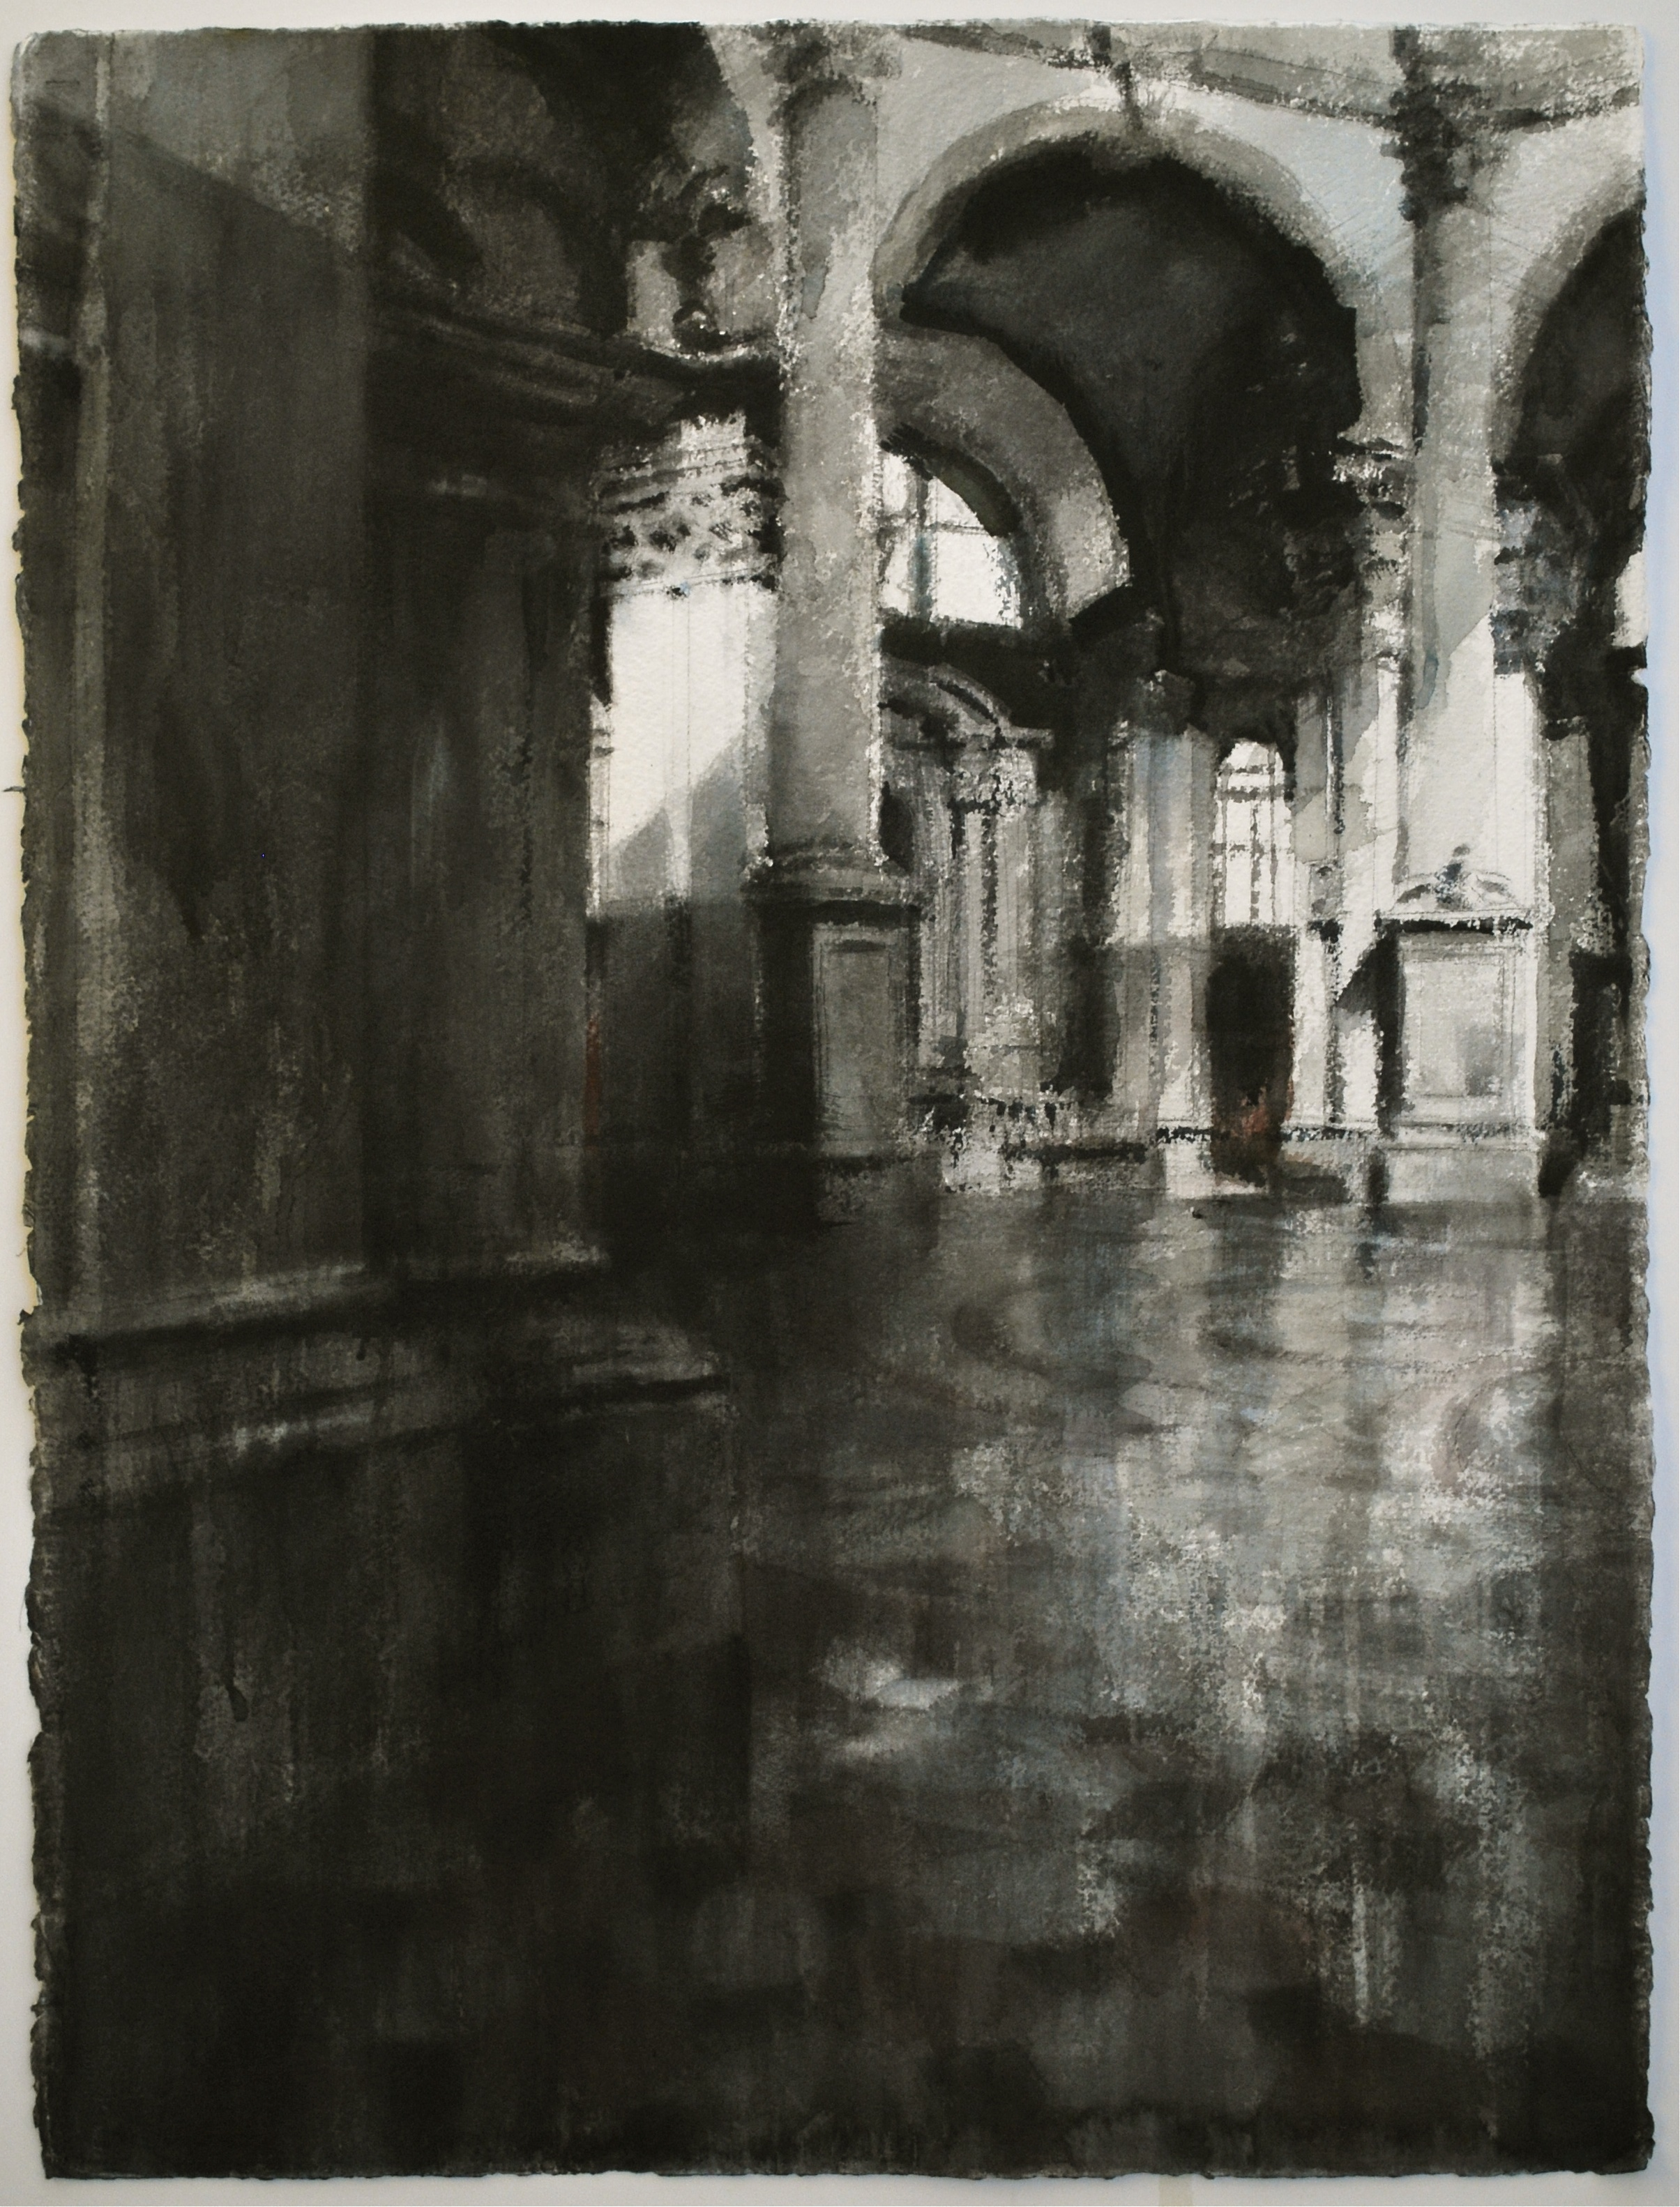 Santa Maria Della Salute, 22x30 inches, (Private Collection)